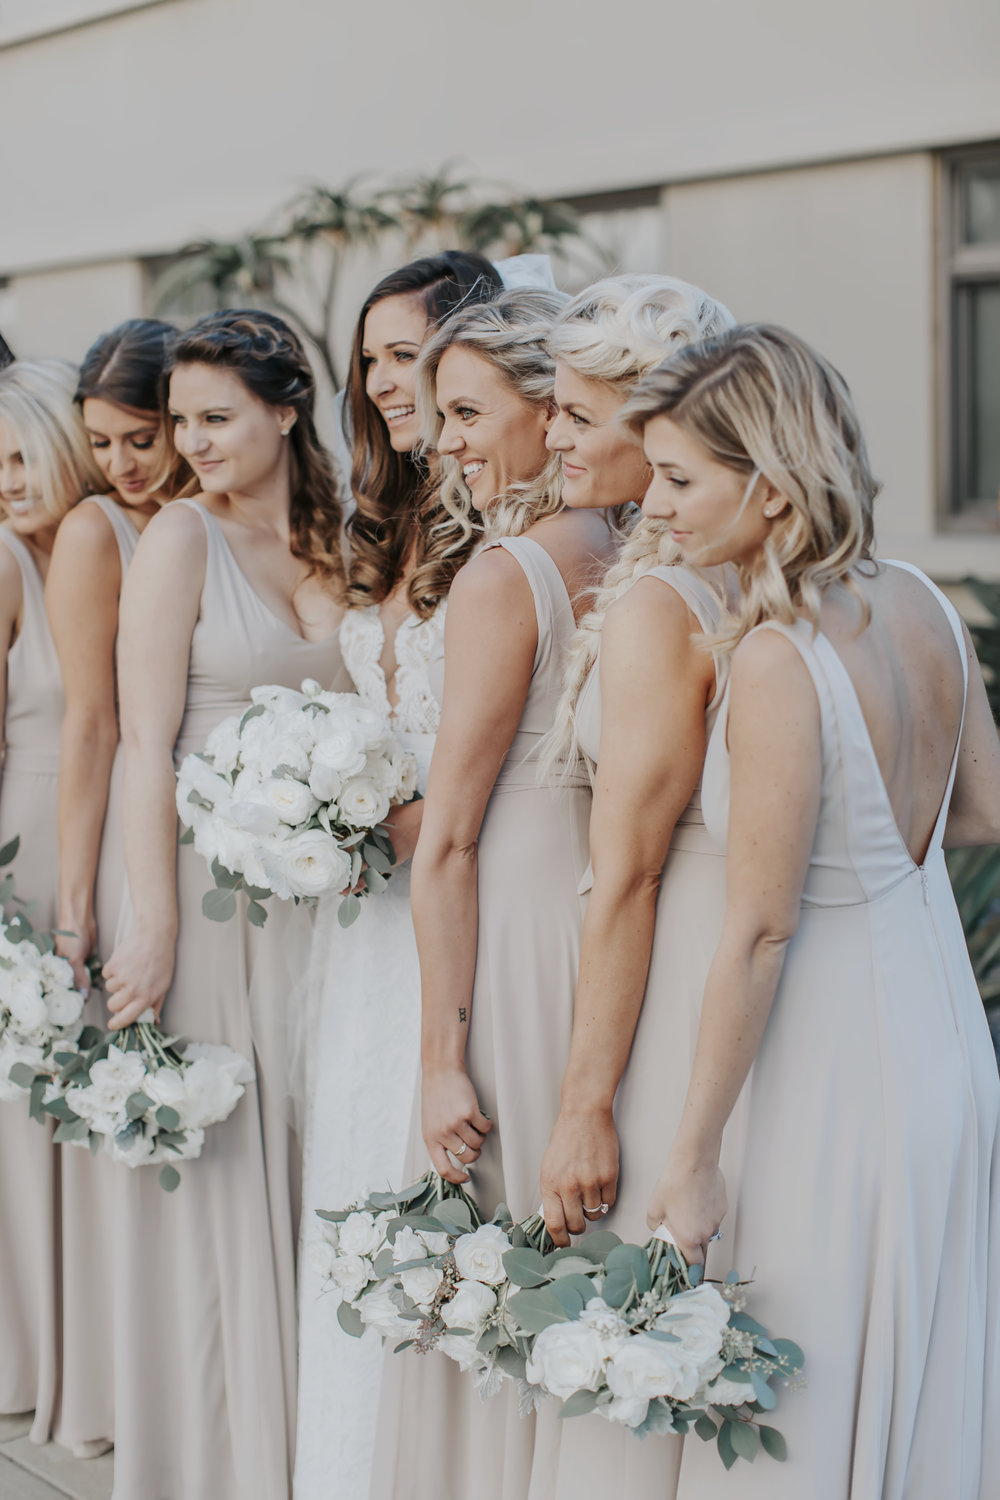 15 bridemaid bouquets.jpg